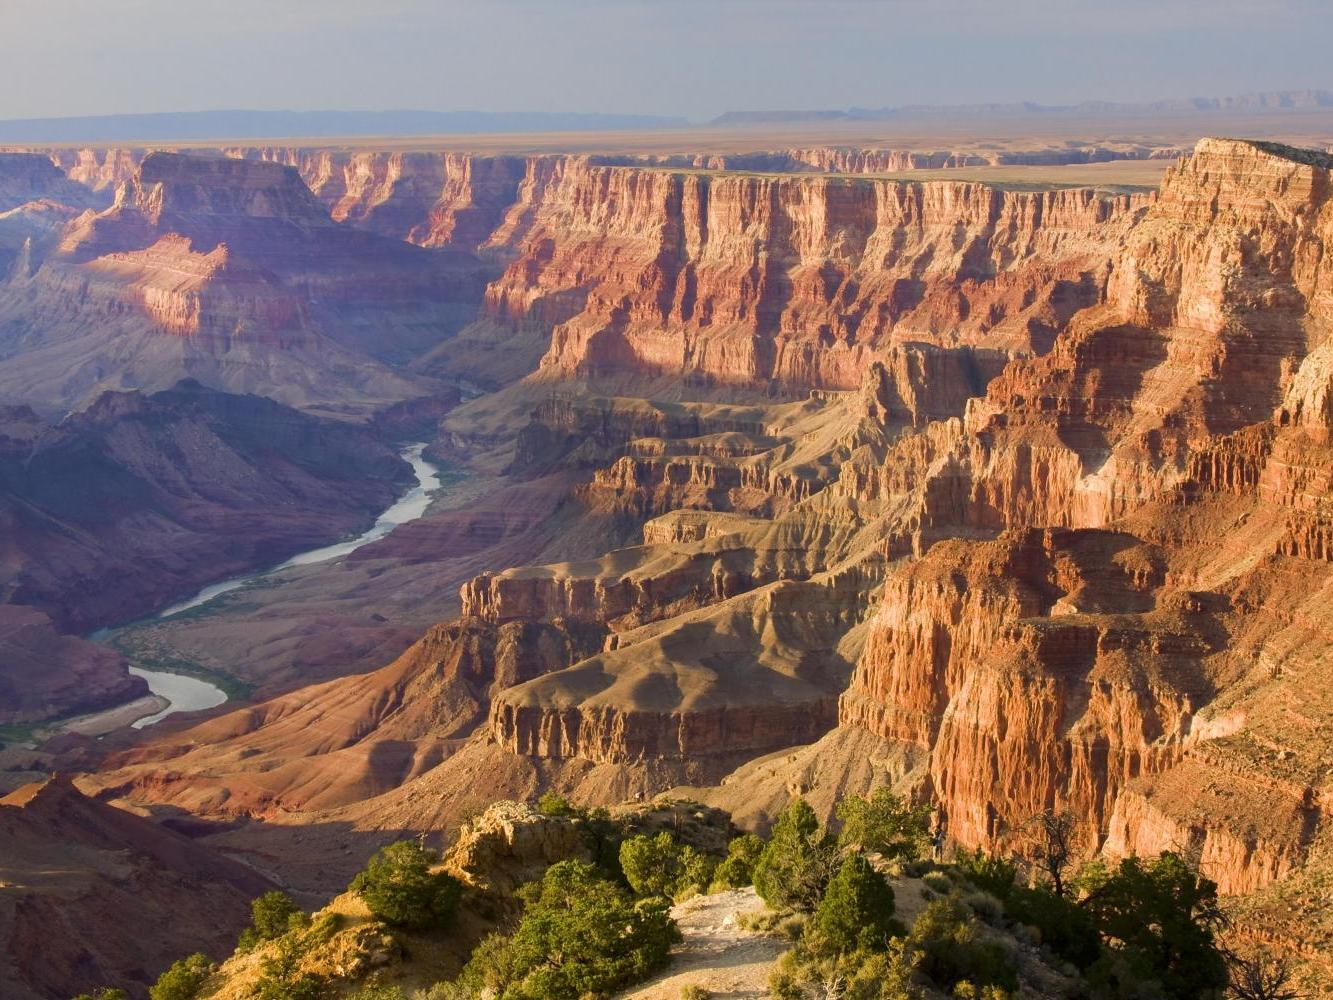 2-Day Grand Canyon Tour from Sedona/Flagstaff